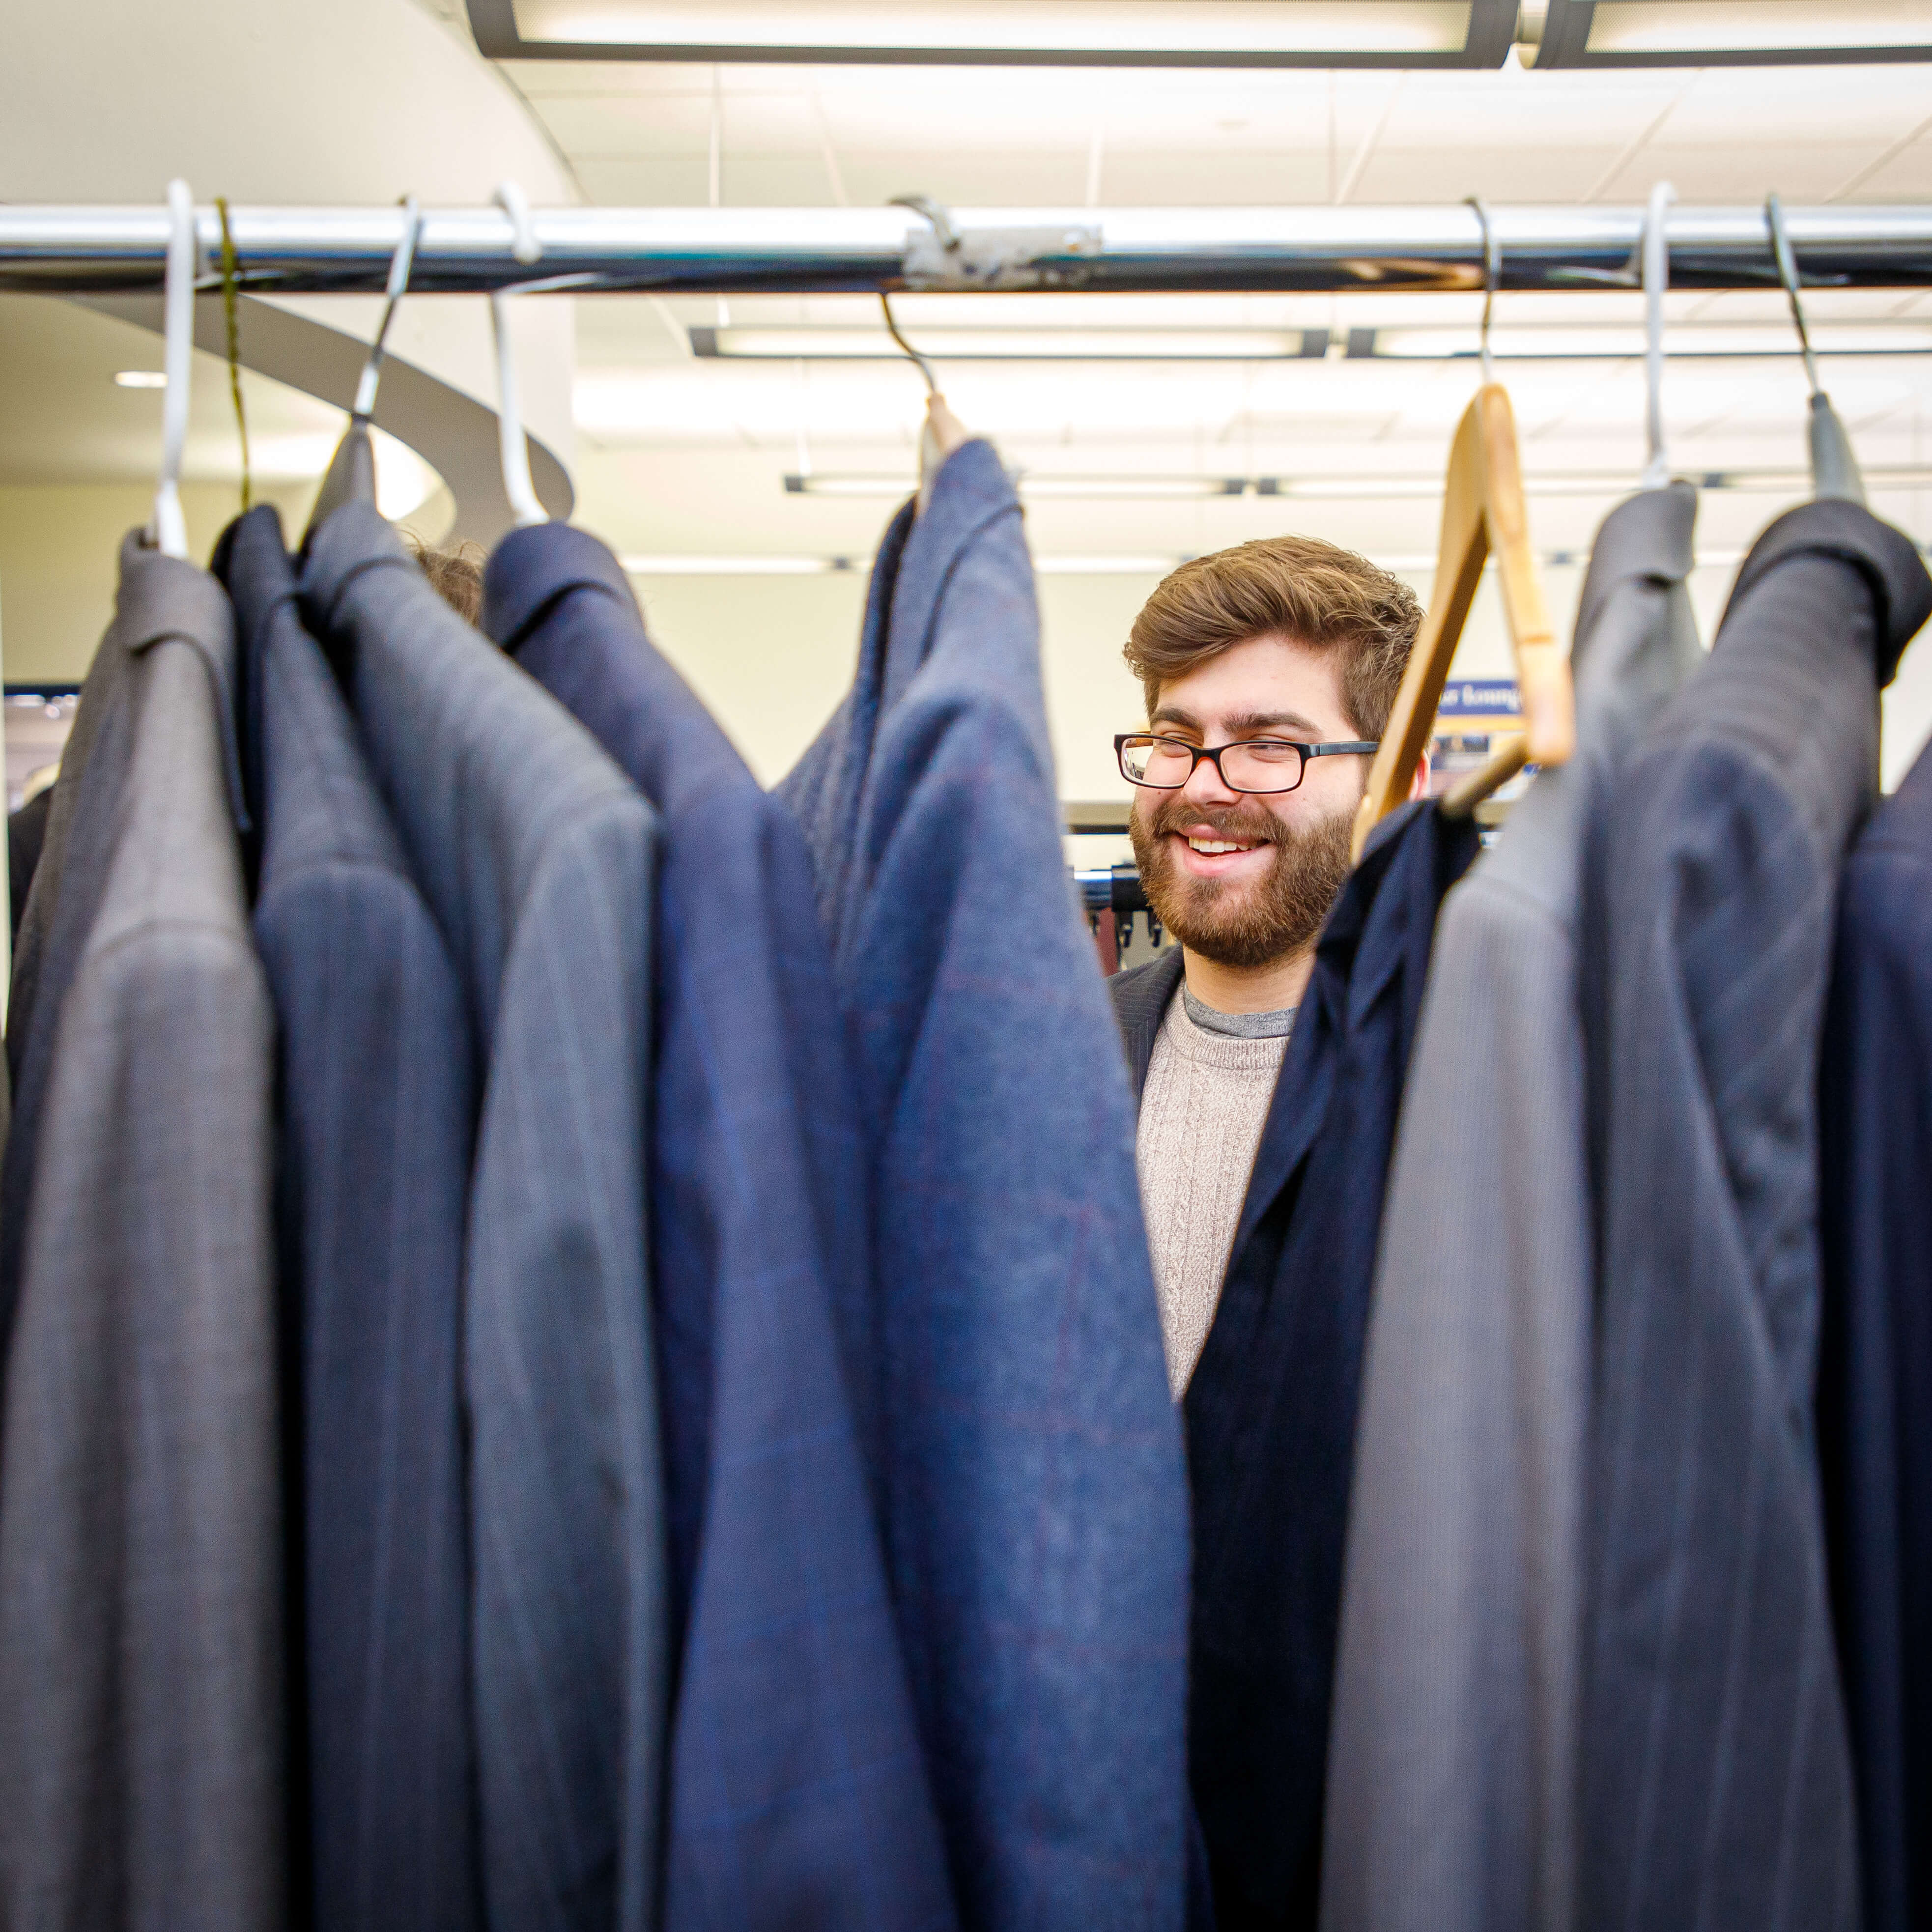 A student looks through professional suit coats at the Career Closet event at S…